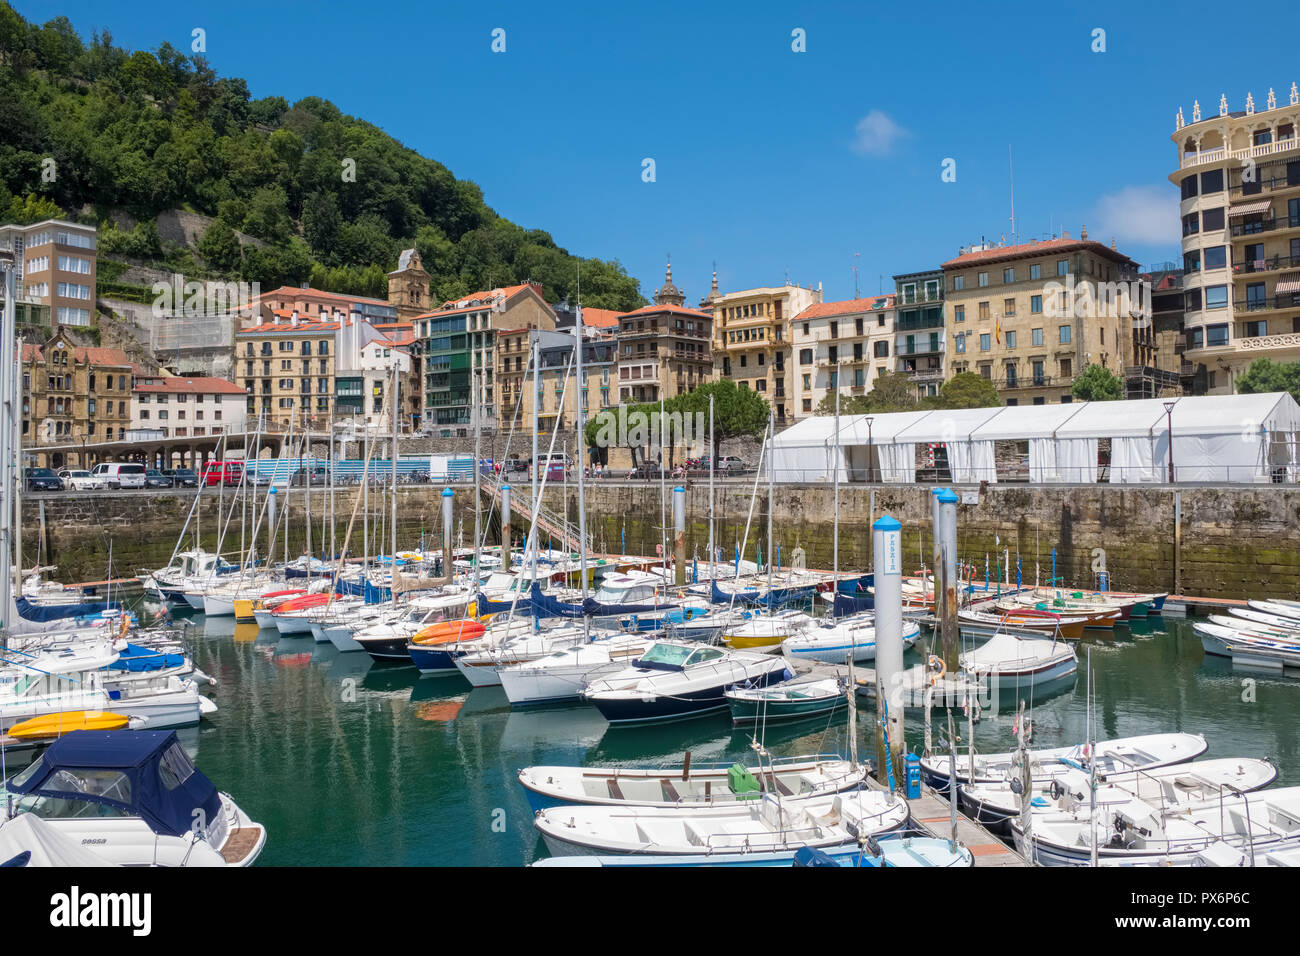 Harbour in San Sebastian, Donostia, Basque Country, Spain, Europe - Stock Image